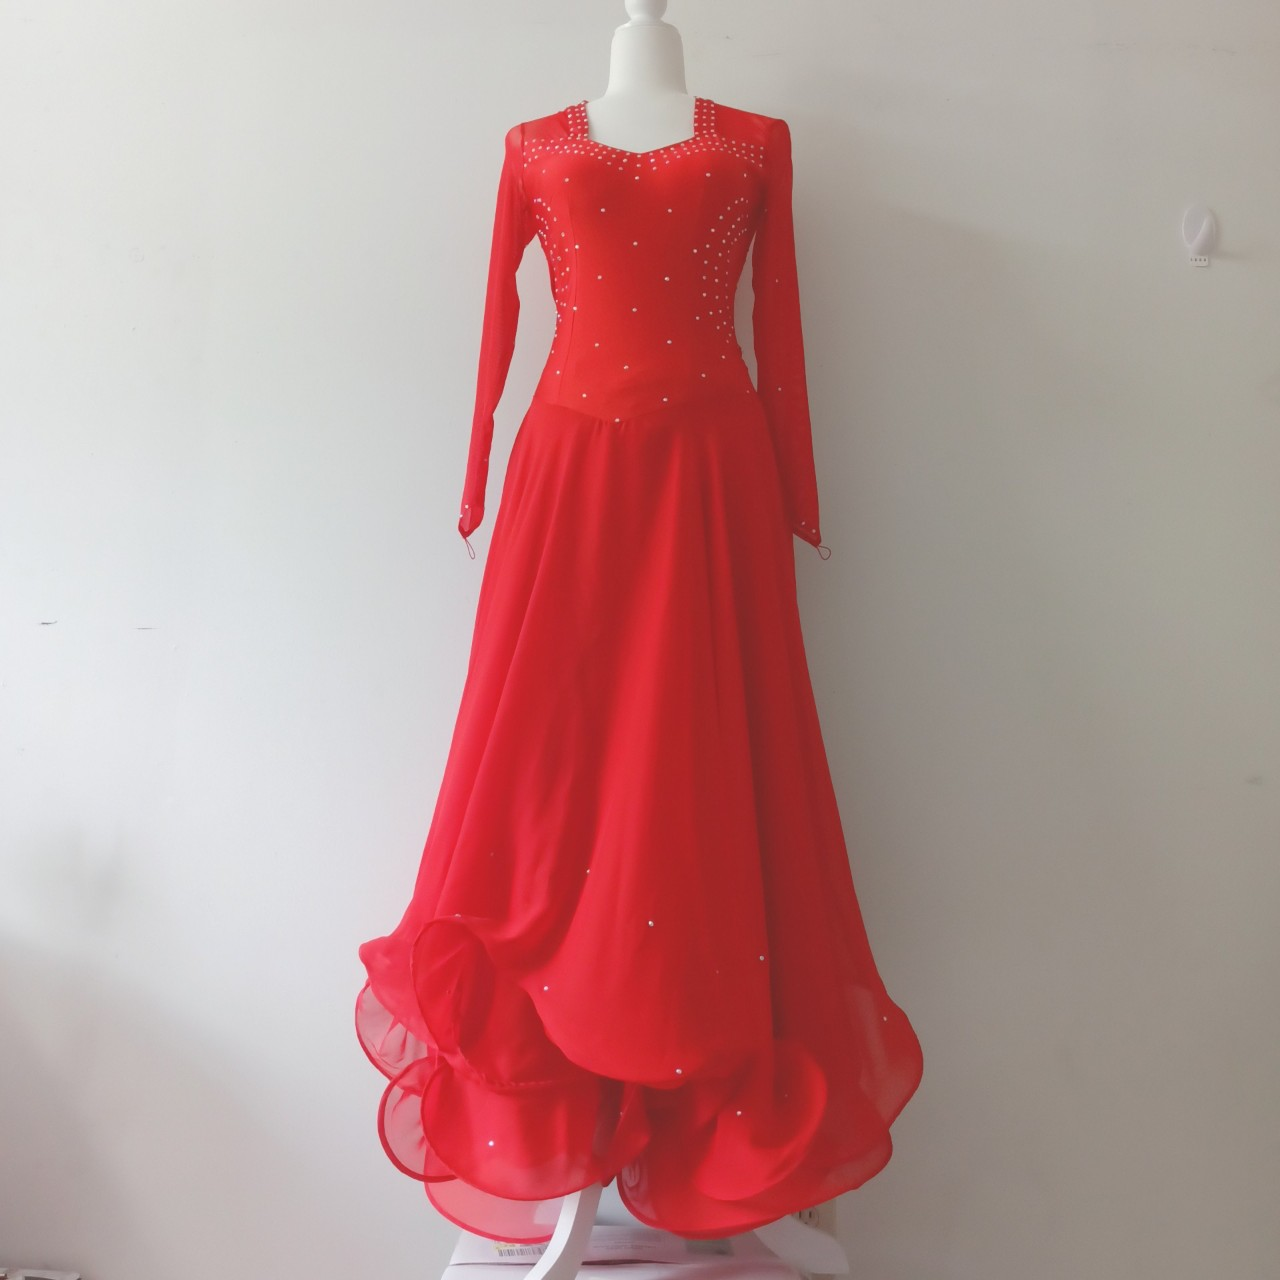 Product Image 1 - Red ballroom dance dress with